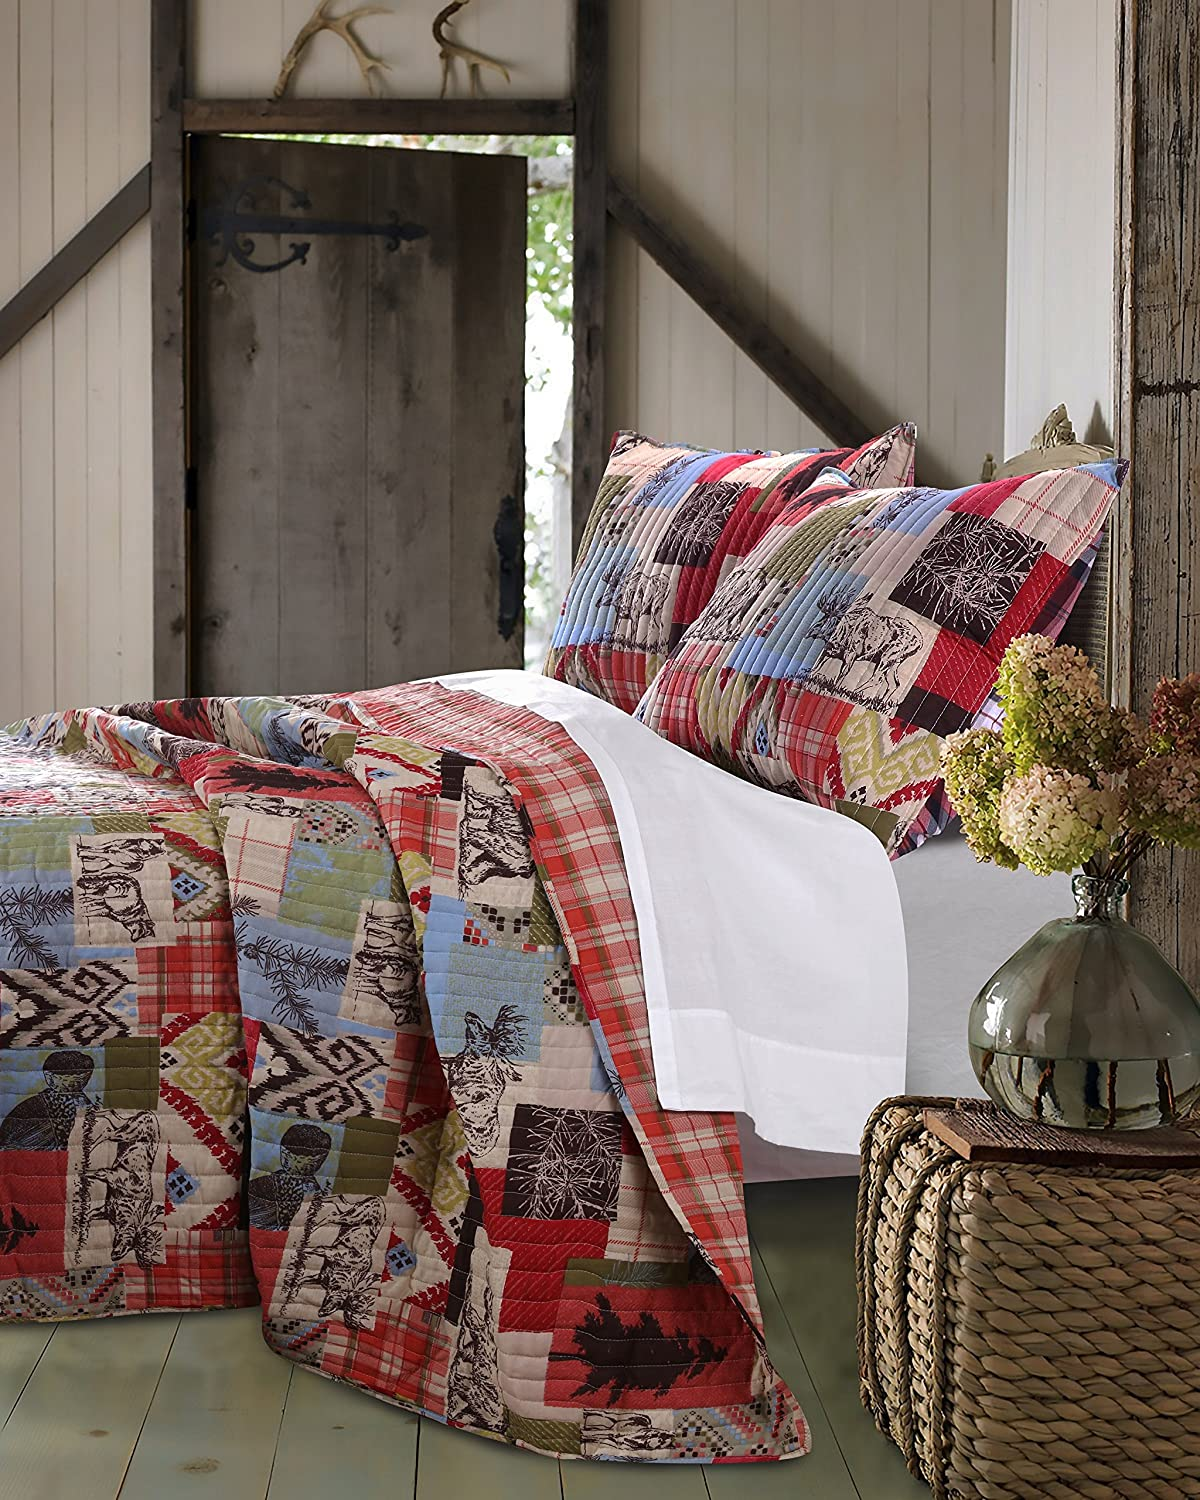 Greenland Home GL-1509GMSQ 3 Piece Rustic Lodge Quilt Set, Full/Queen